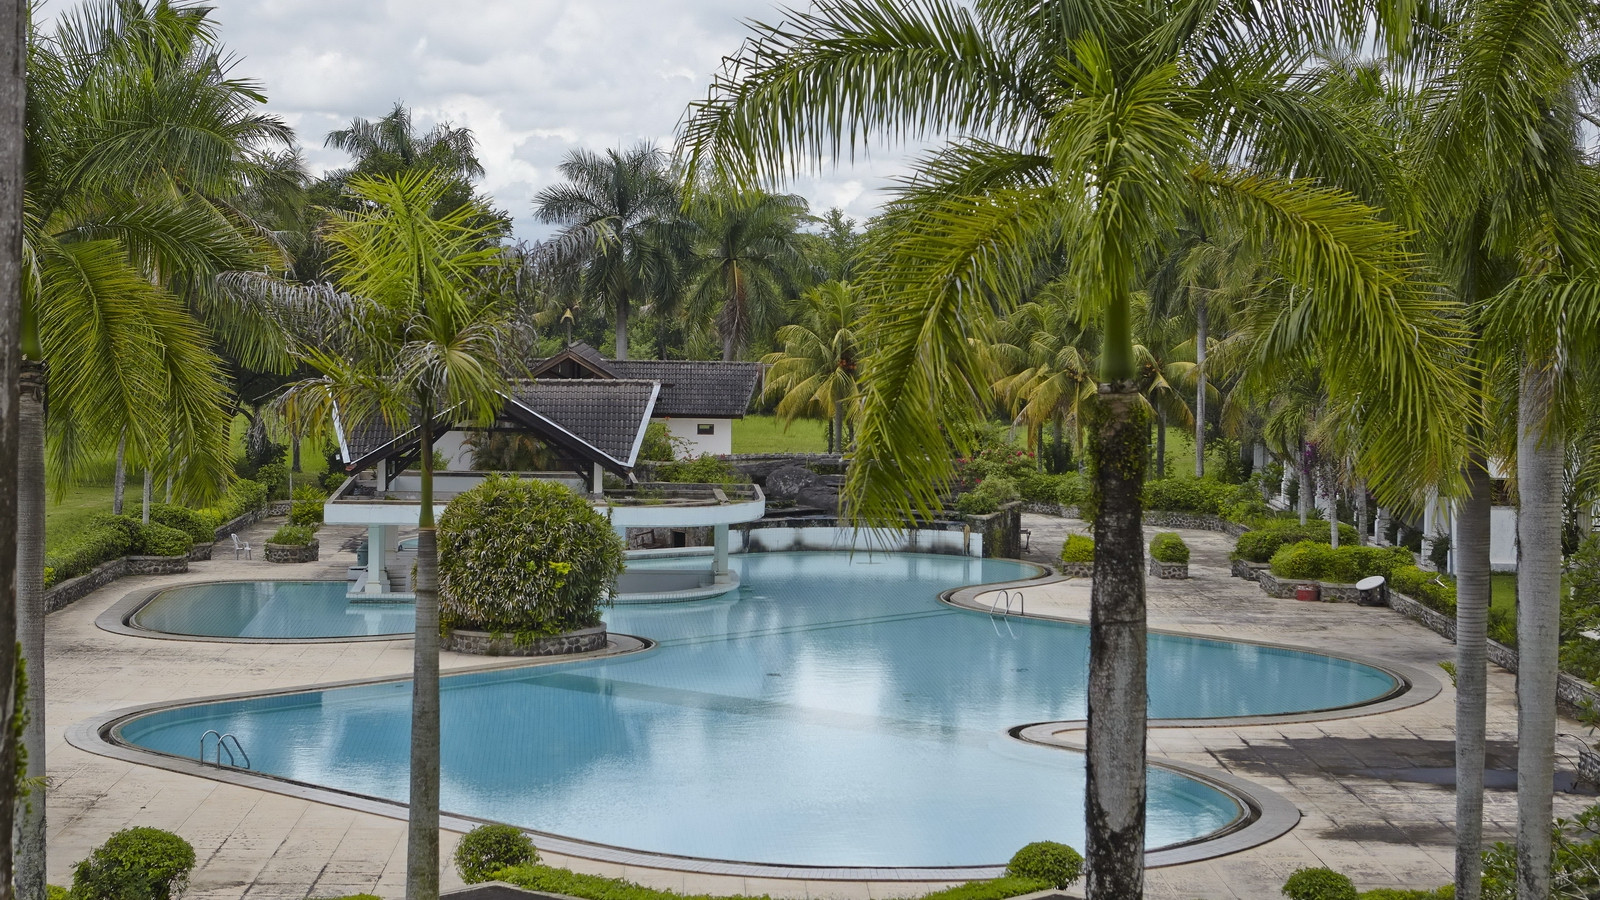 lombok-resort-swimming-pool_pic01